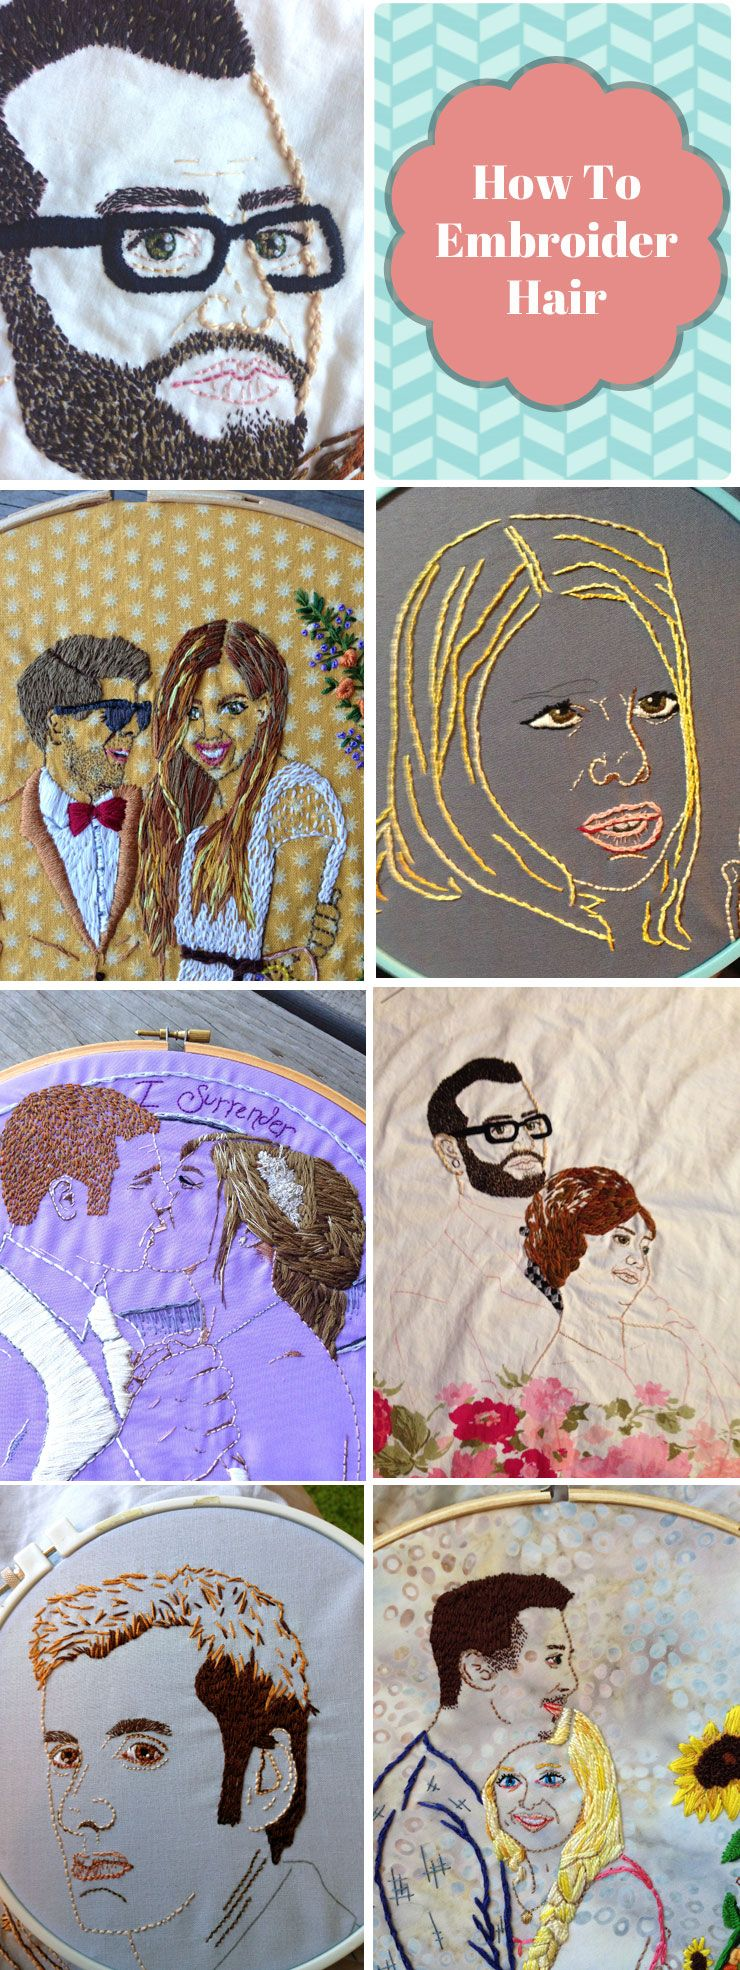 How to Embroider Hair-  A tutorial from Holey Socks Art